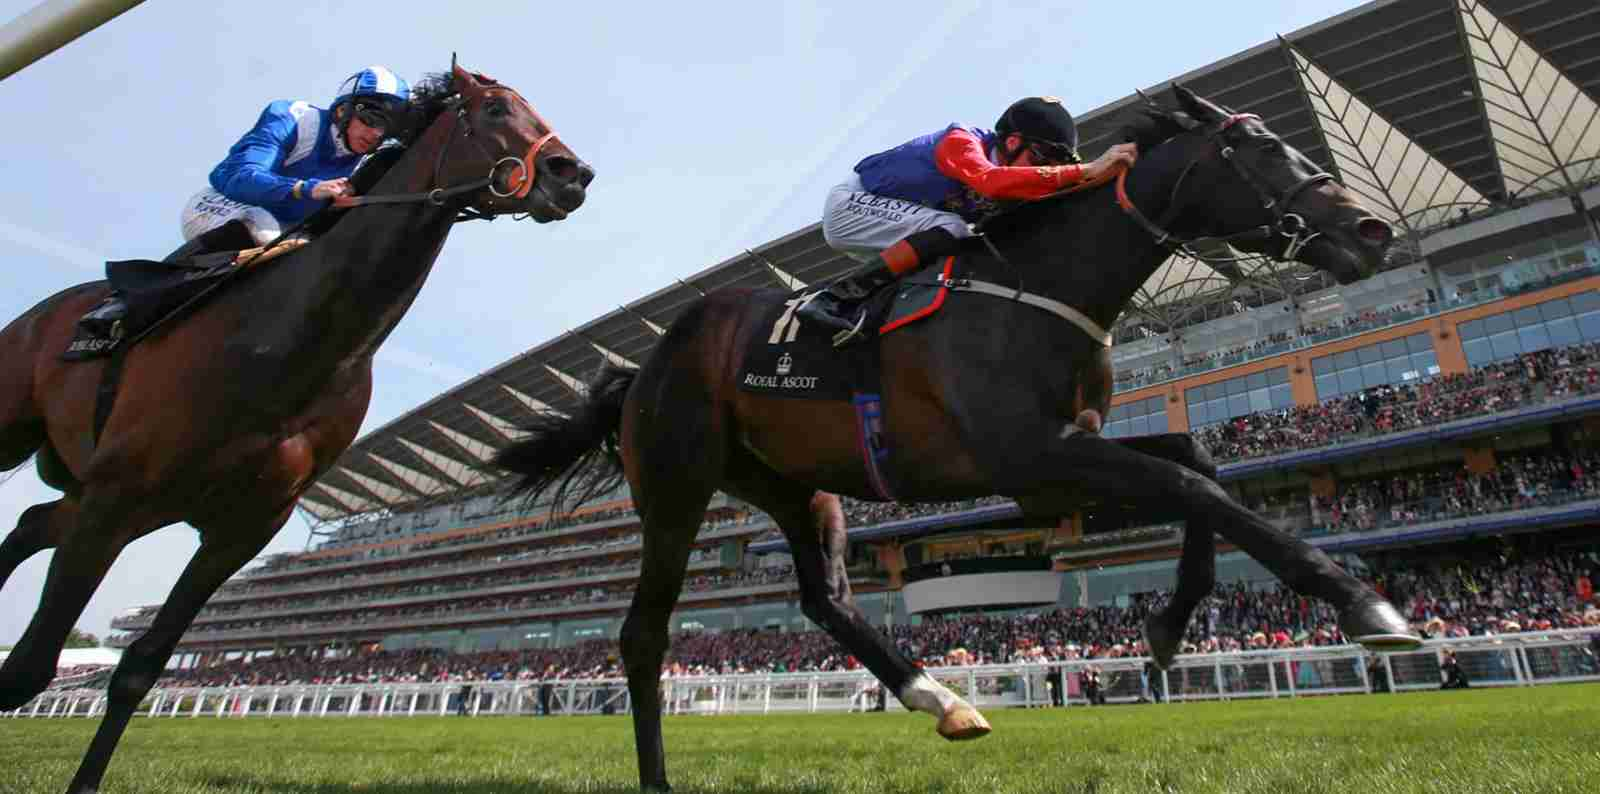 Royal Ascot racing. (Photo courtesty of The Royal Family)